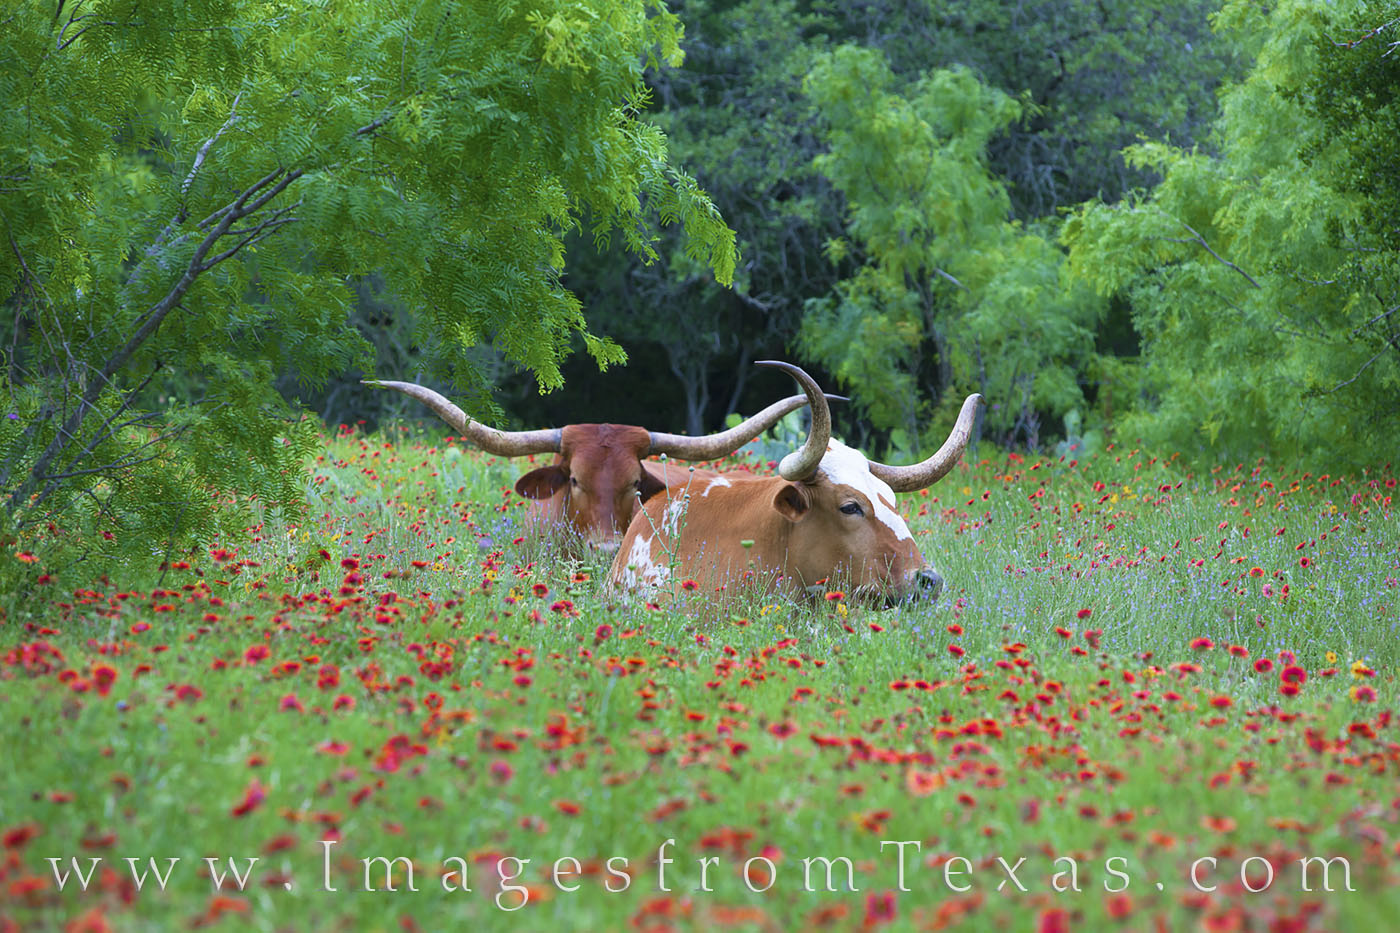 longhorns, wildflowers, texas wildflowers, texas hill country, hill country, firewheels, indian blankets, llano, spring, may, photo